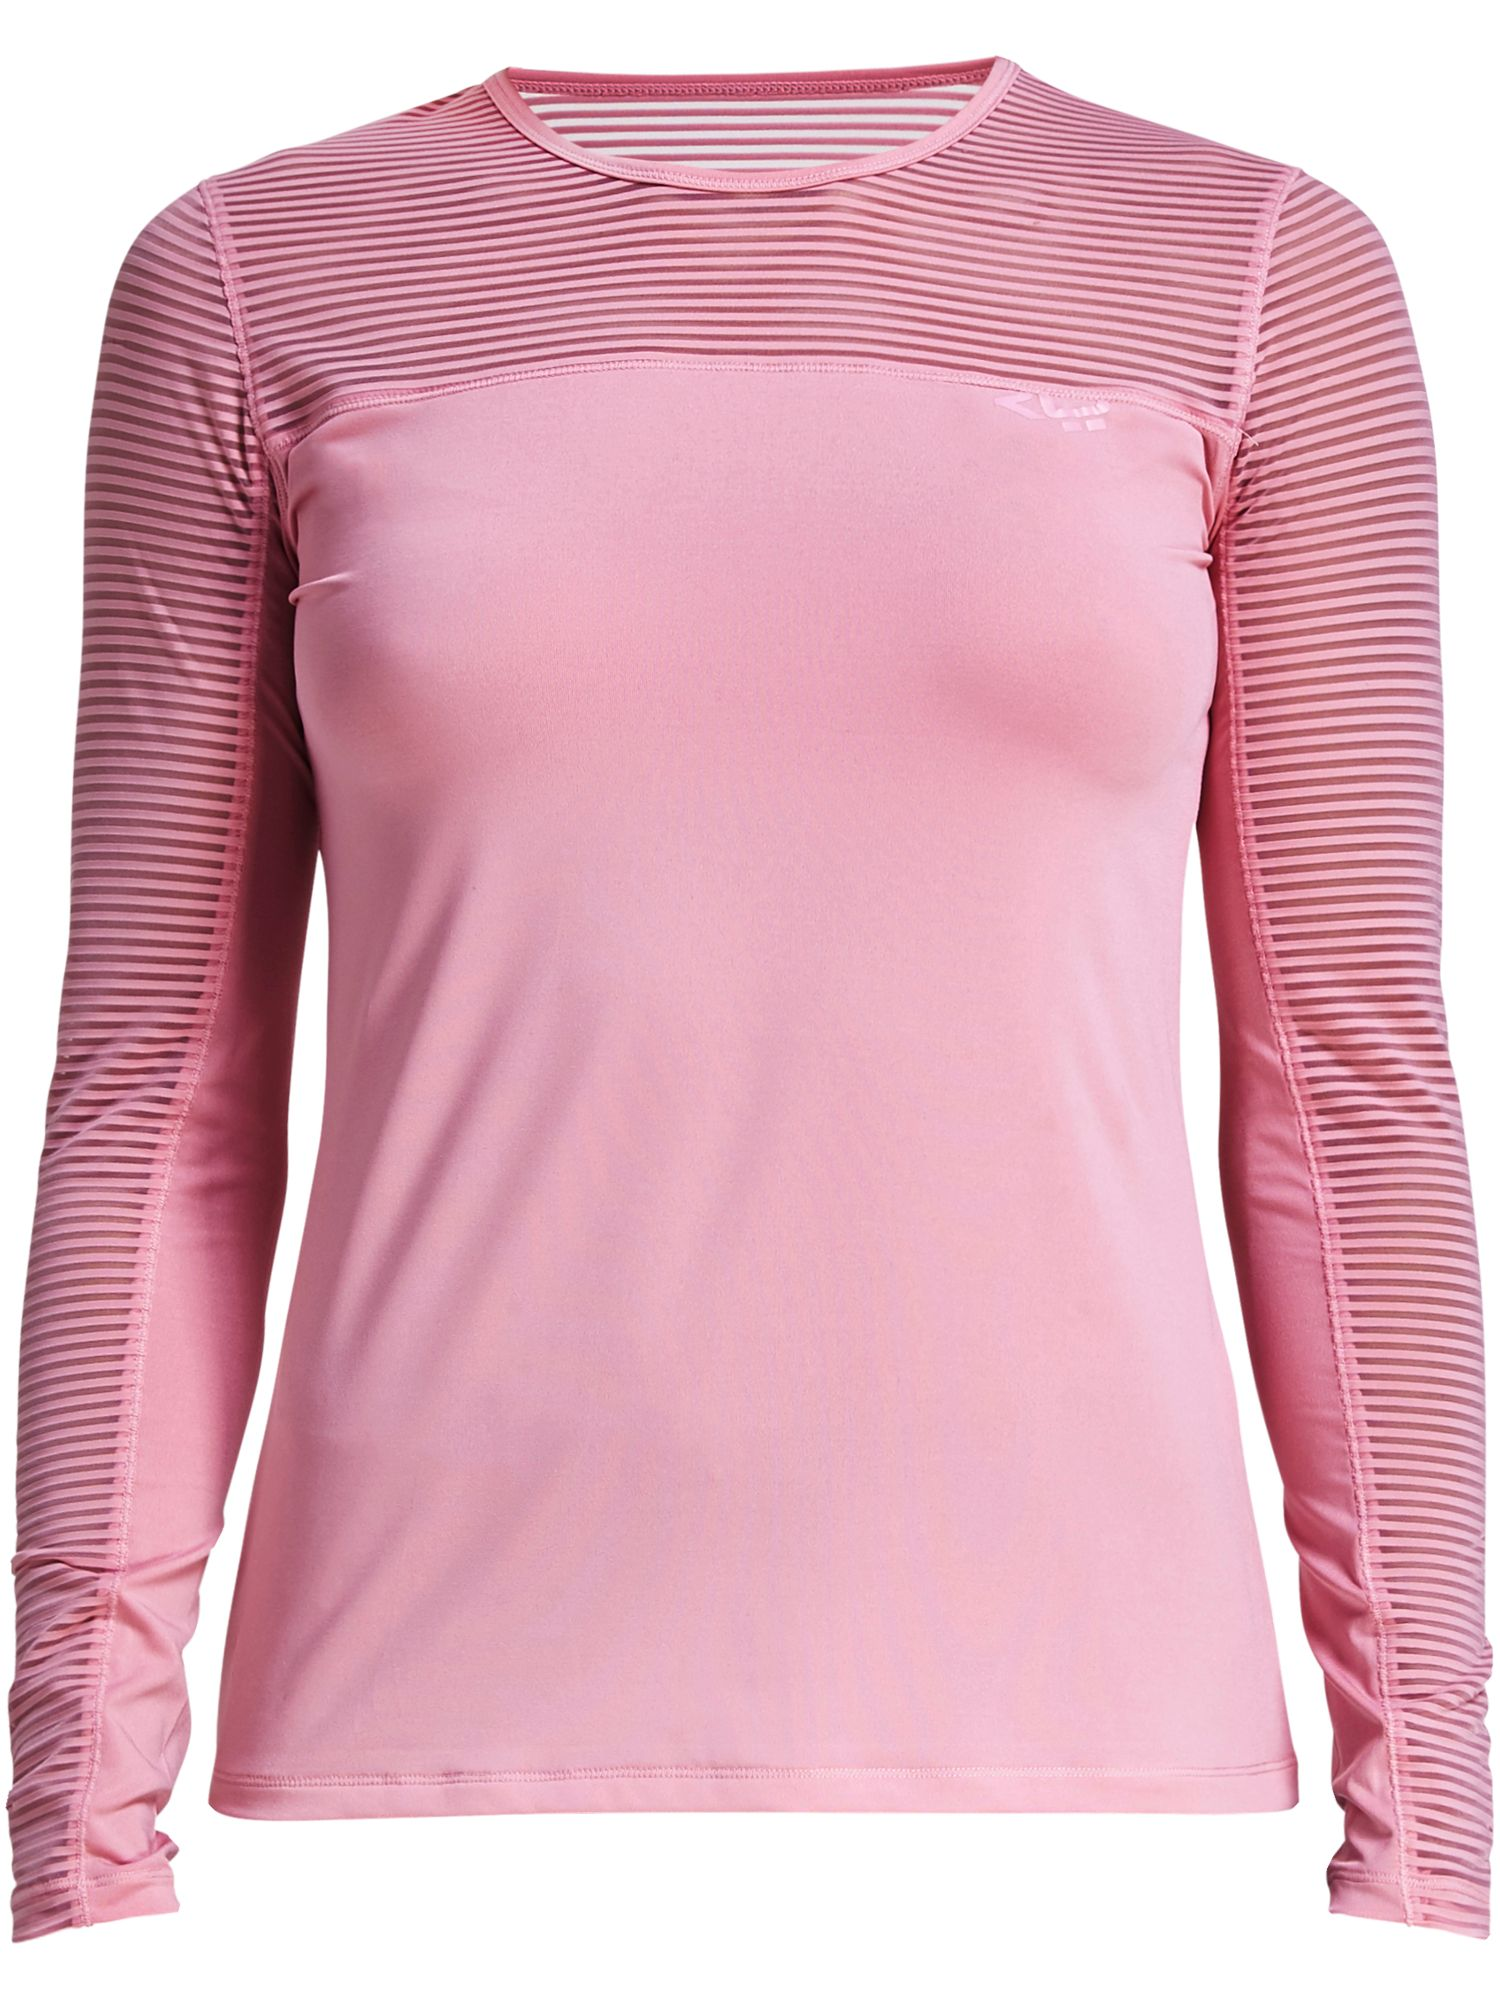 Rohnisch Miko Long Sleeve, Pink